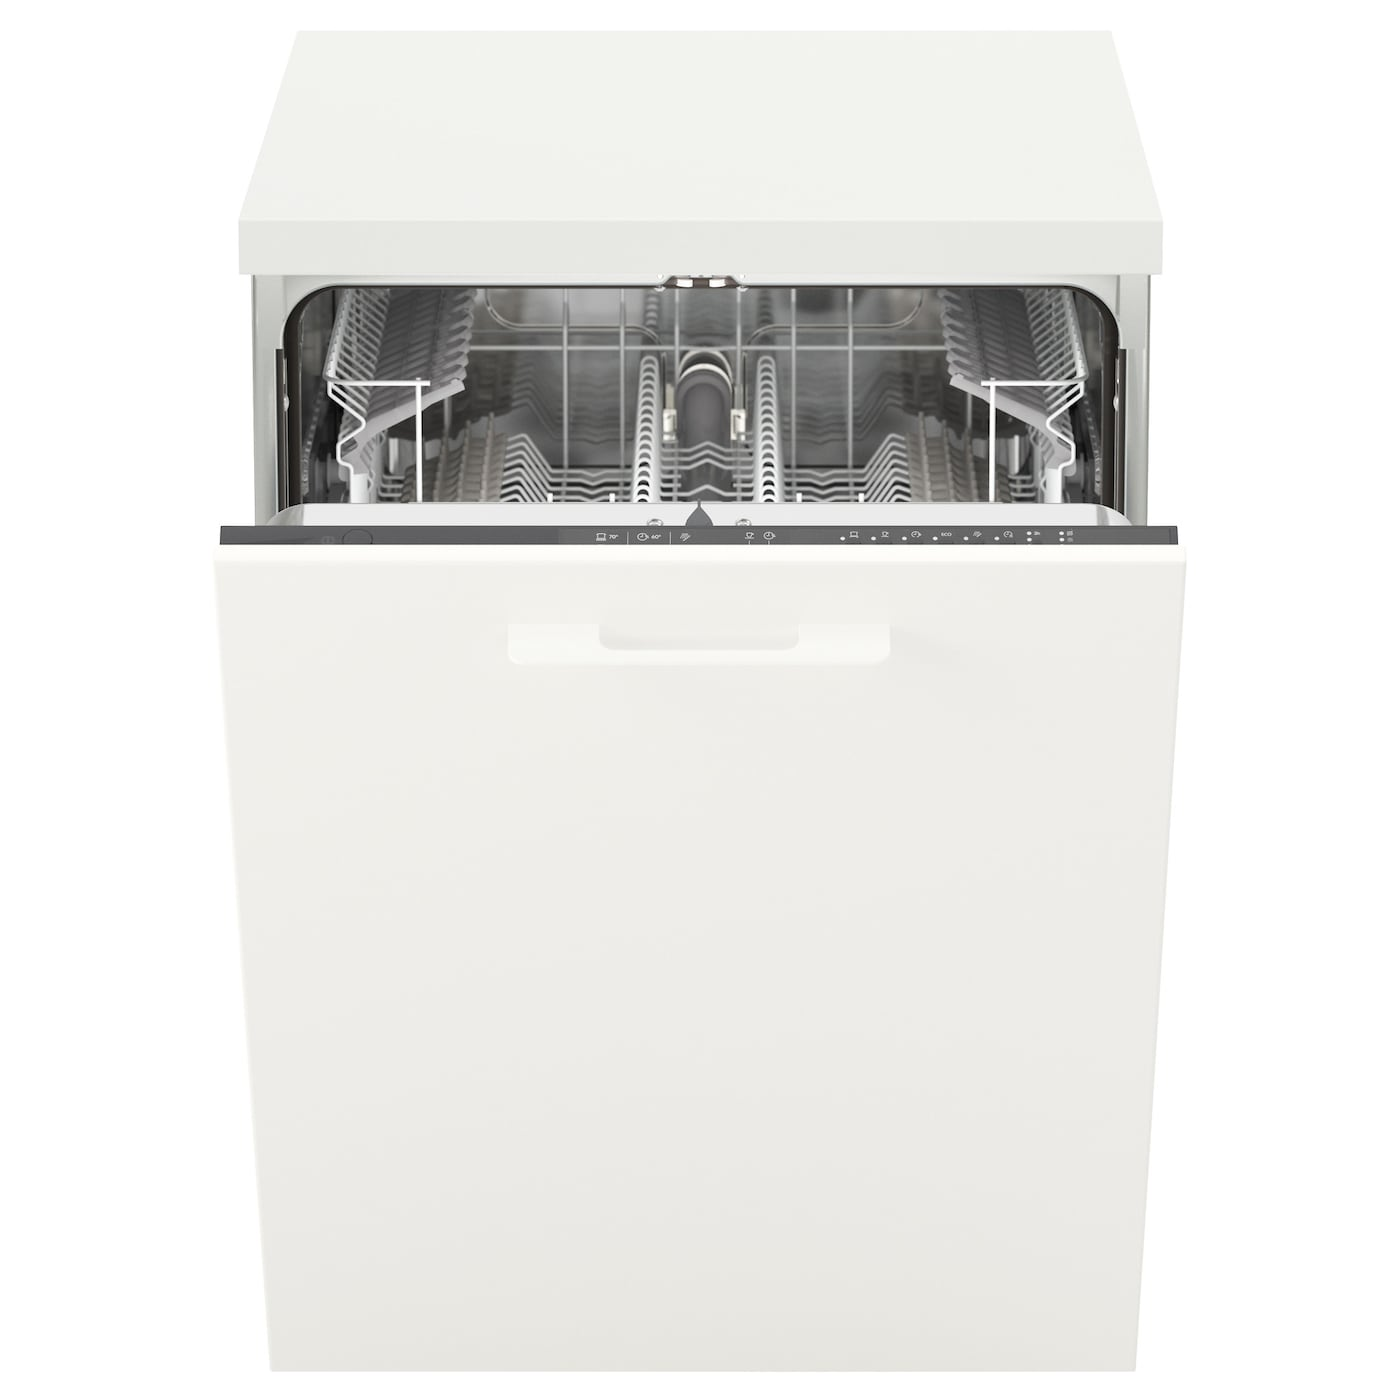 Ikea RengÖra Integrated Dishwasher 5 Year Guarantee Read About The Terms In Brochure